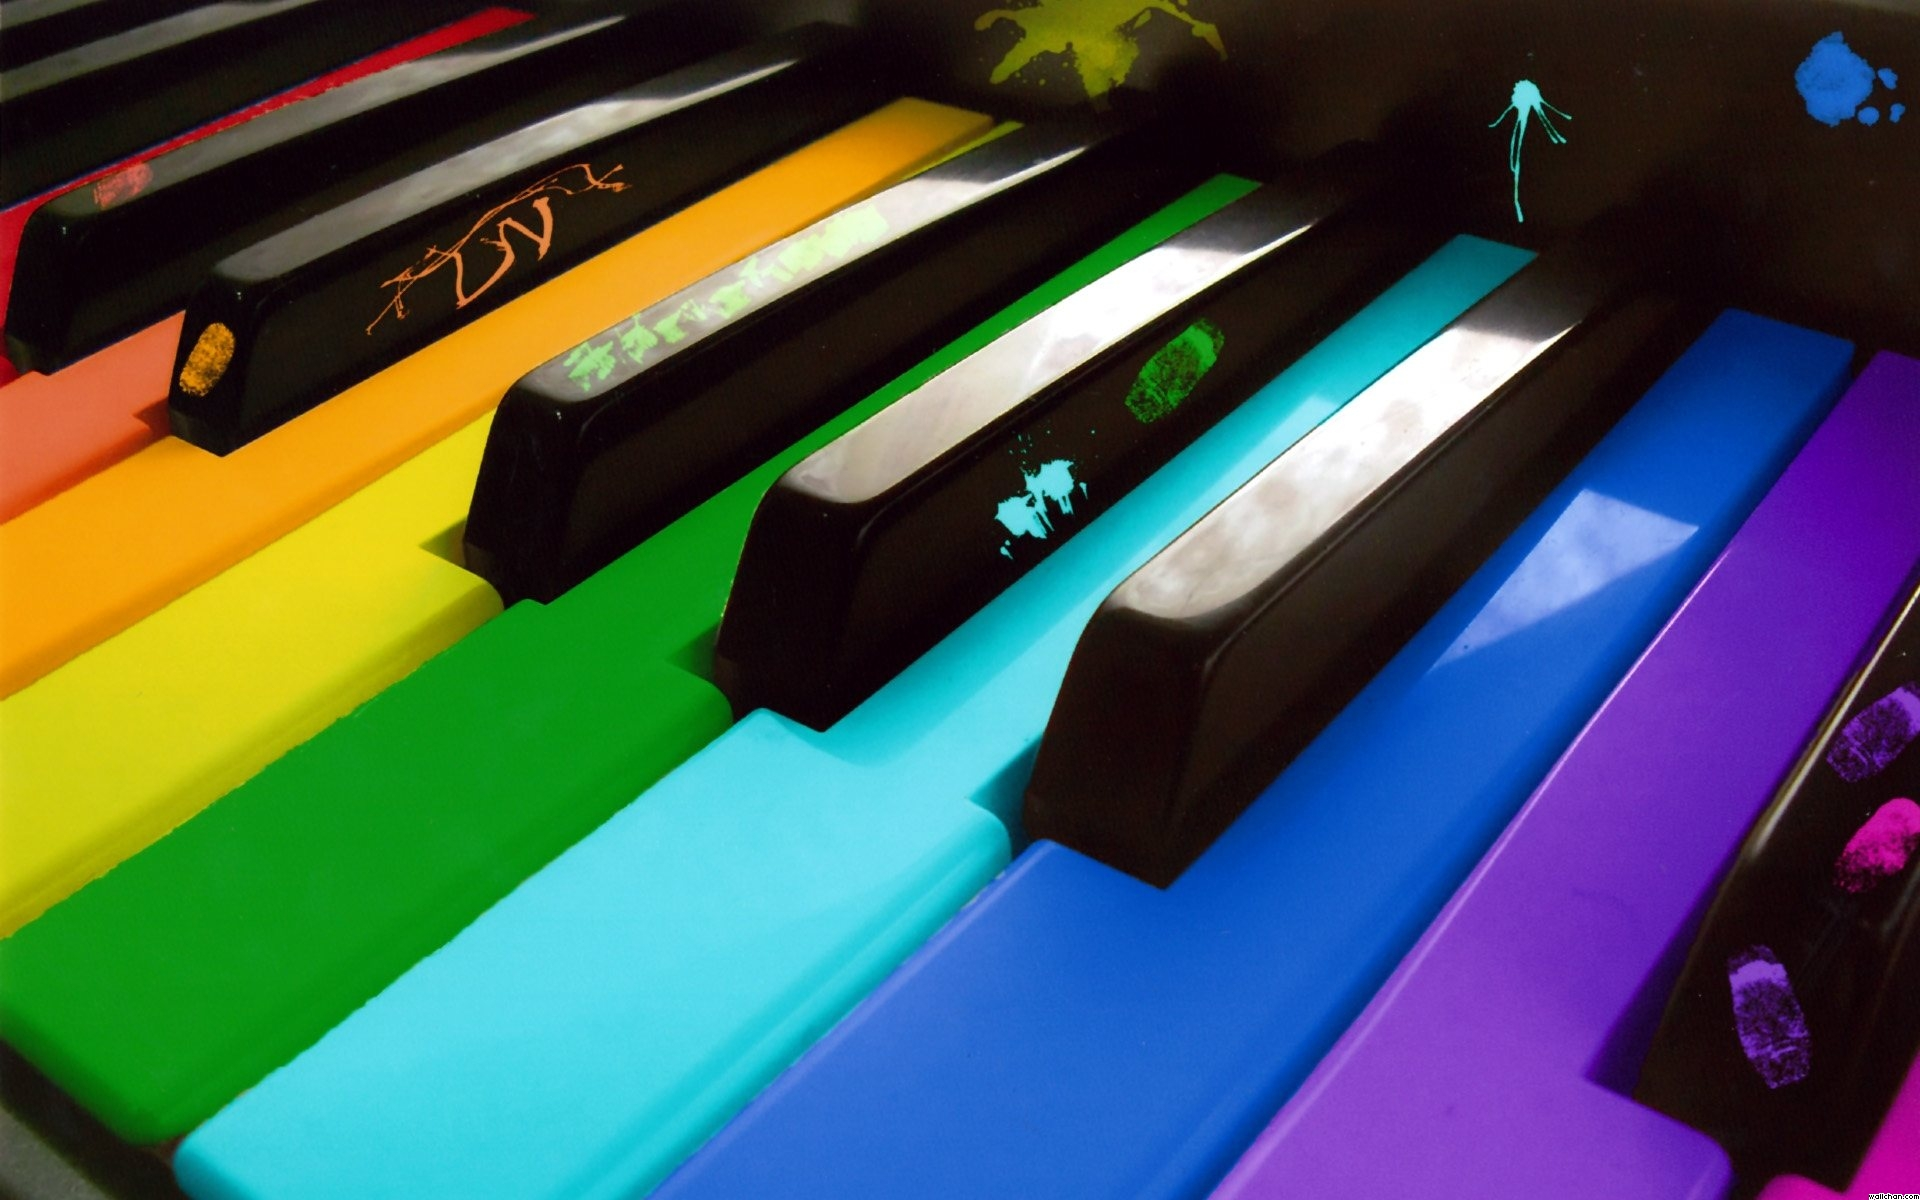 Piano wallpaper music wallpaper 24173627 fanpop - Cool piano backgrounds ...